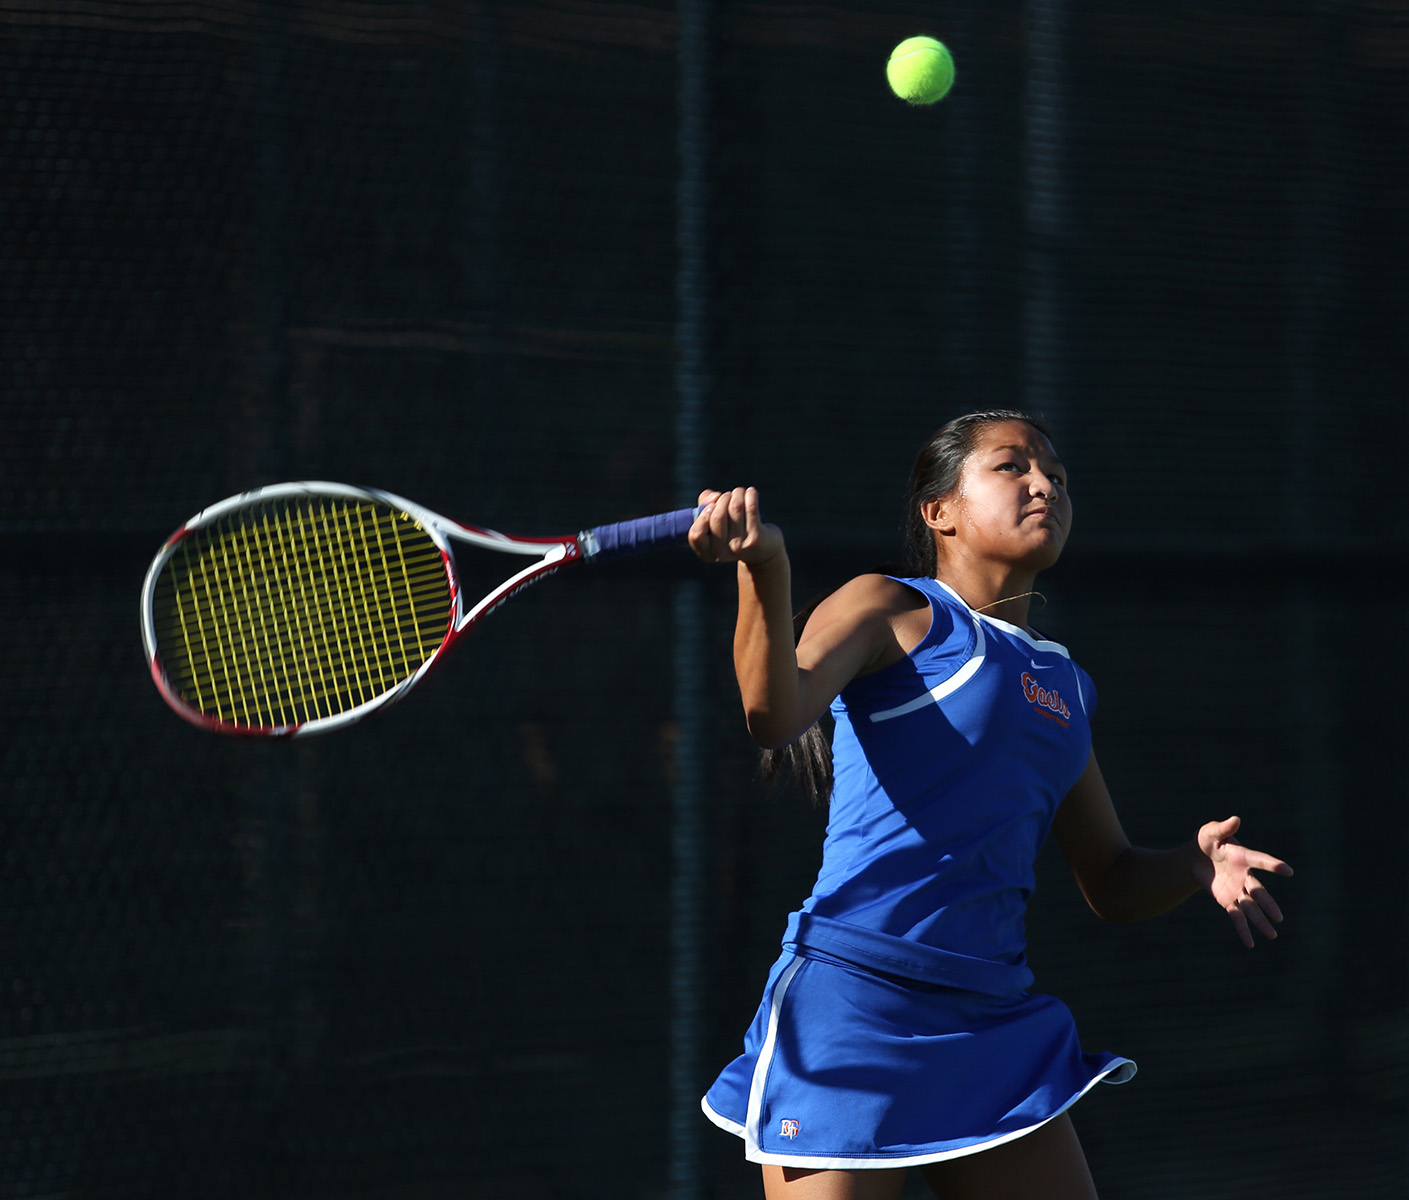 Bishop Gorman sophomore Amber Del Rosario keeps her eye on the ball during a Division 1 state championship game against Palo Verde at Darling Tennis Center. Gorman girls team took the title with a 10-8 win.